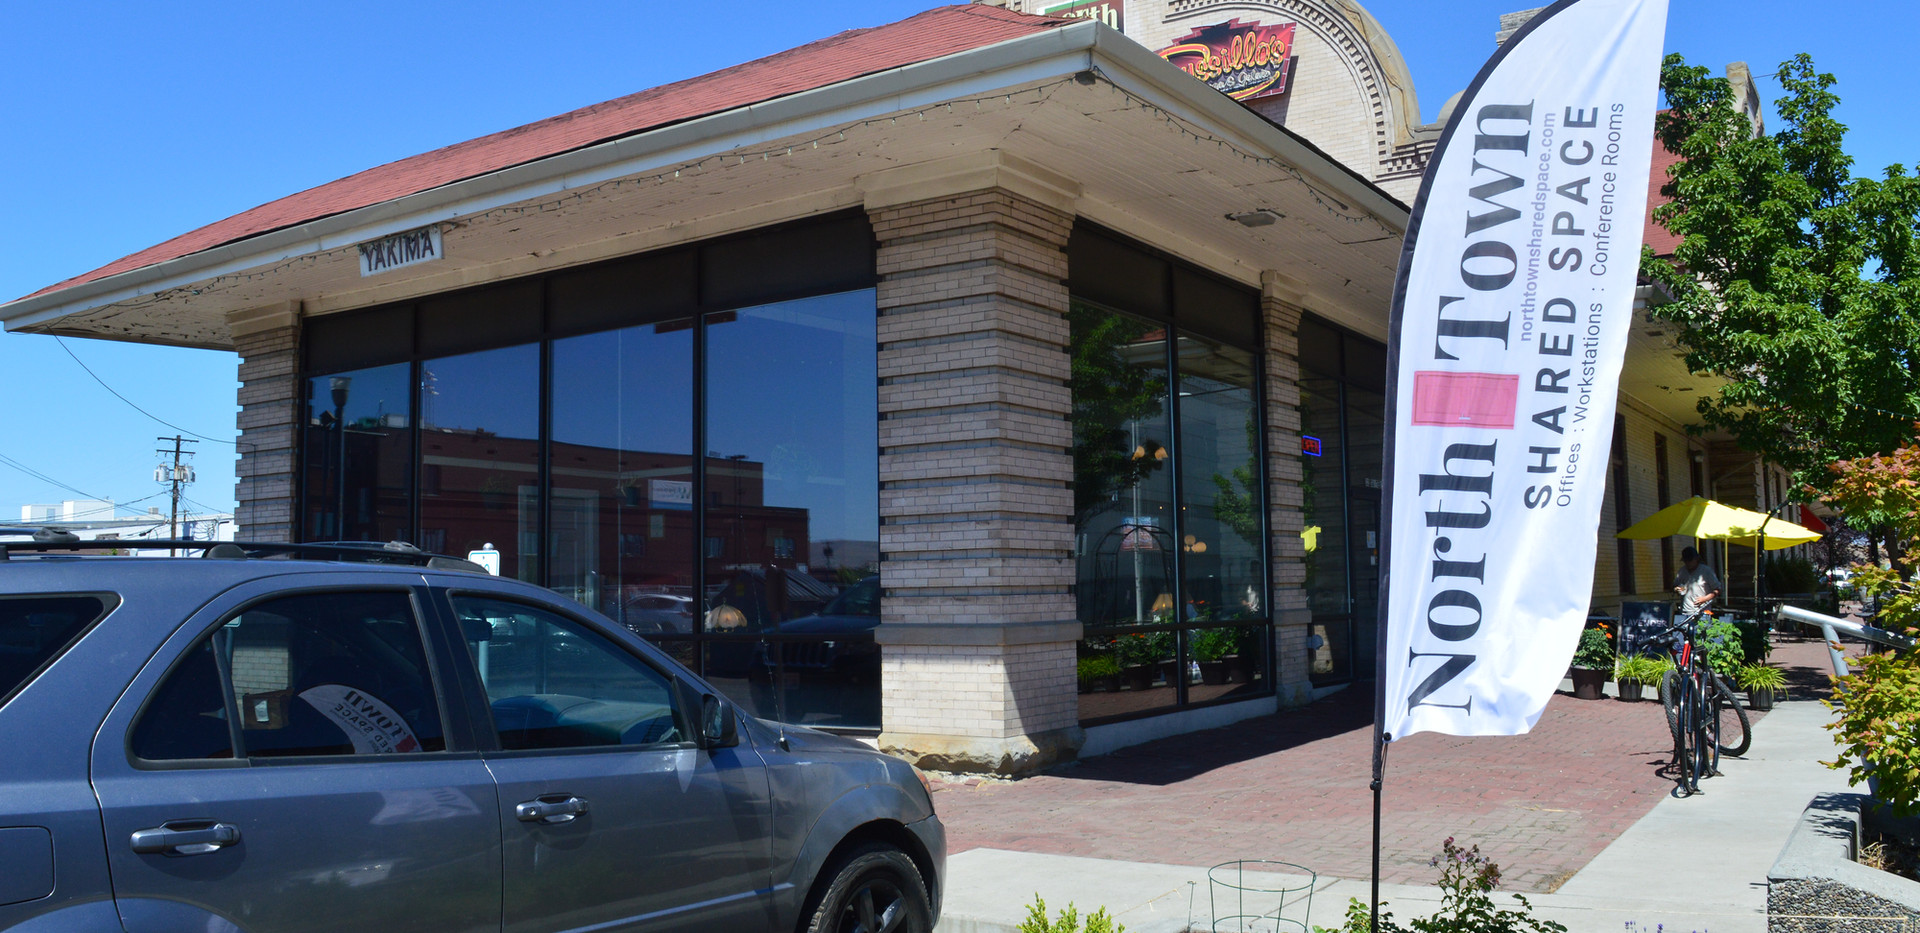 North Town Coffeehouse and Shared Space exterior entrance.